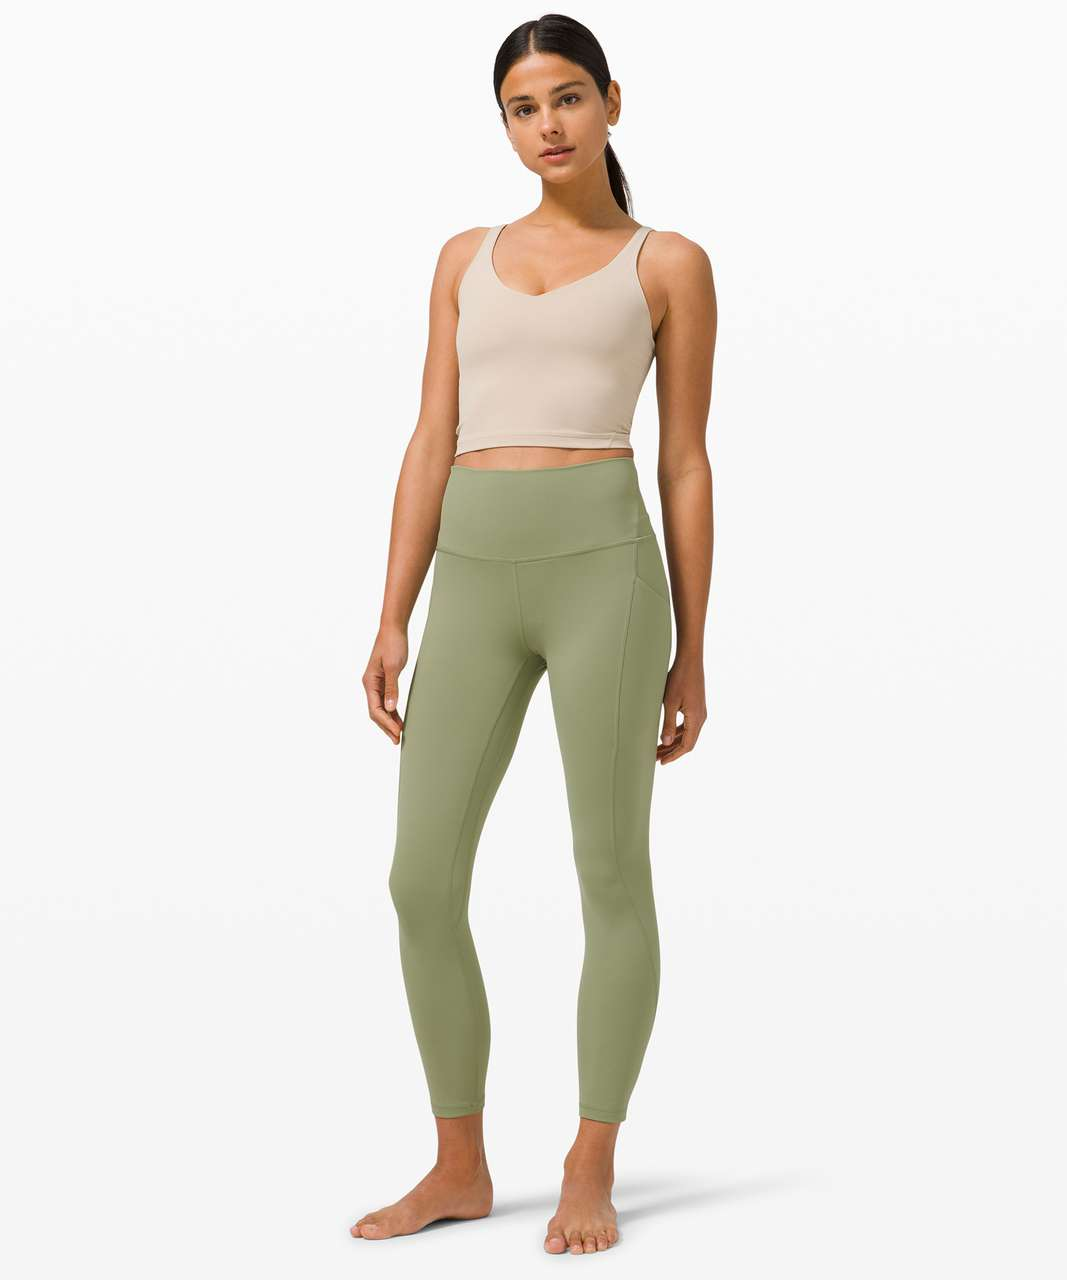 """Lululemon Align High Rise Pant with Pockets 25"""" - Rosemary Green"""